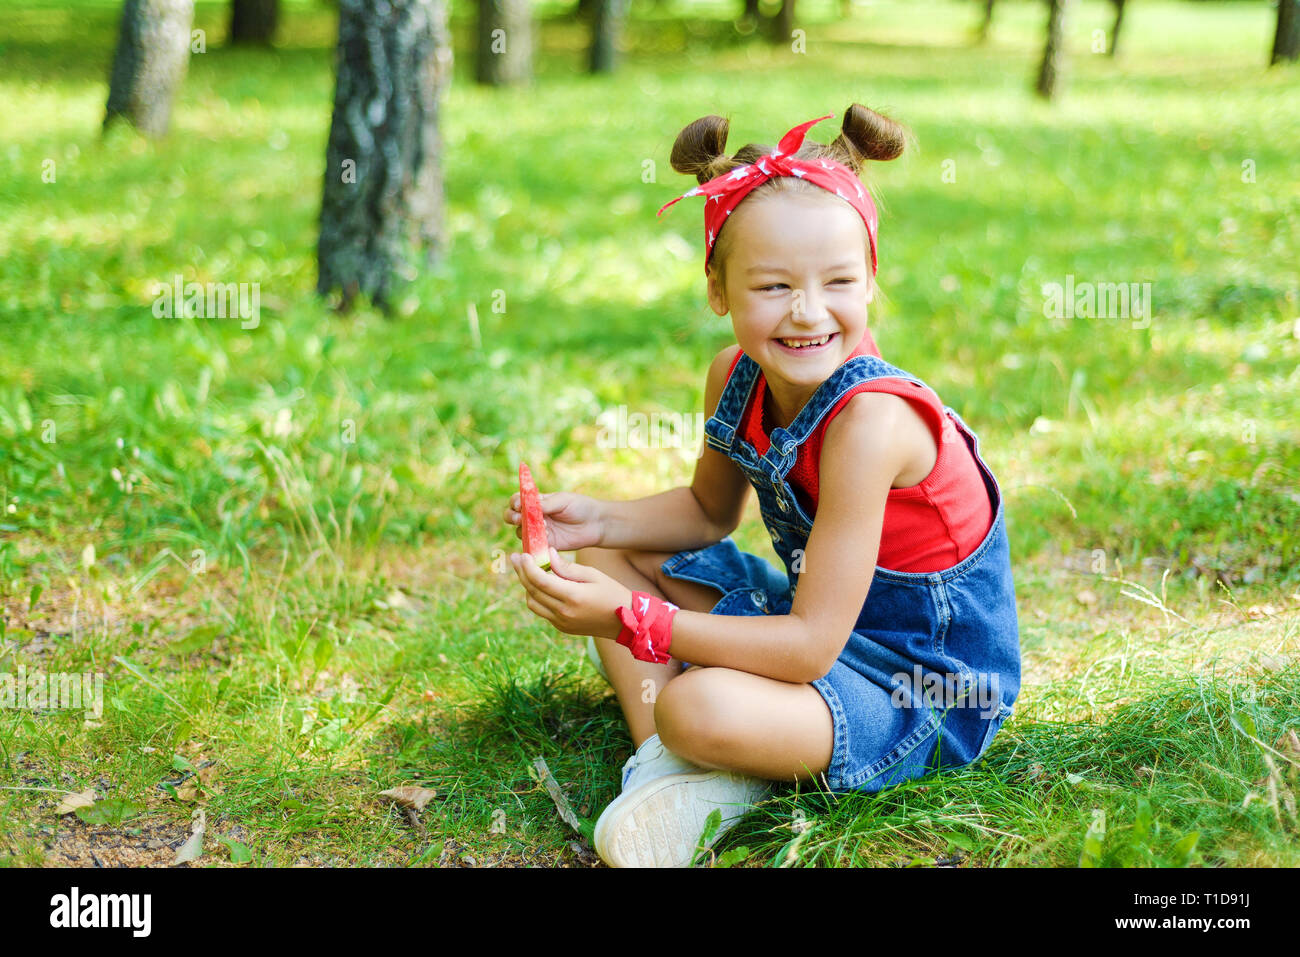 c13187633fce happy little girl in red T-shirt and headscarf in denim overalls holding  ripe watermelon and laughing. the child is sitting on the grass in the park